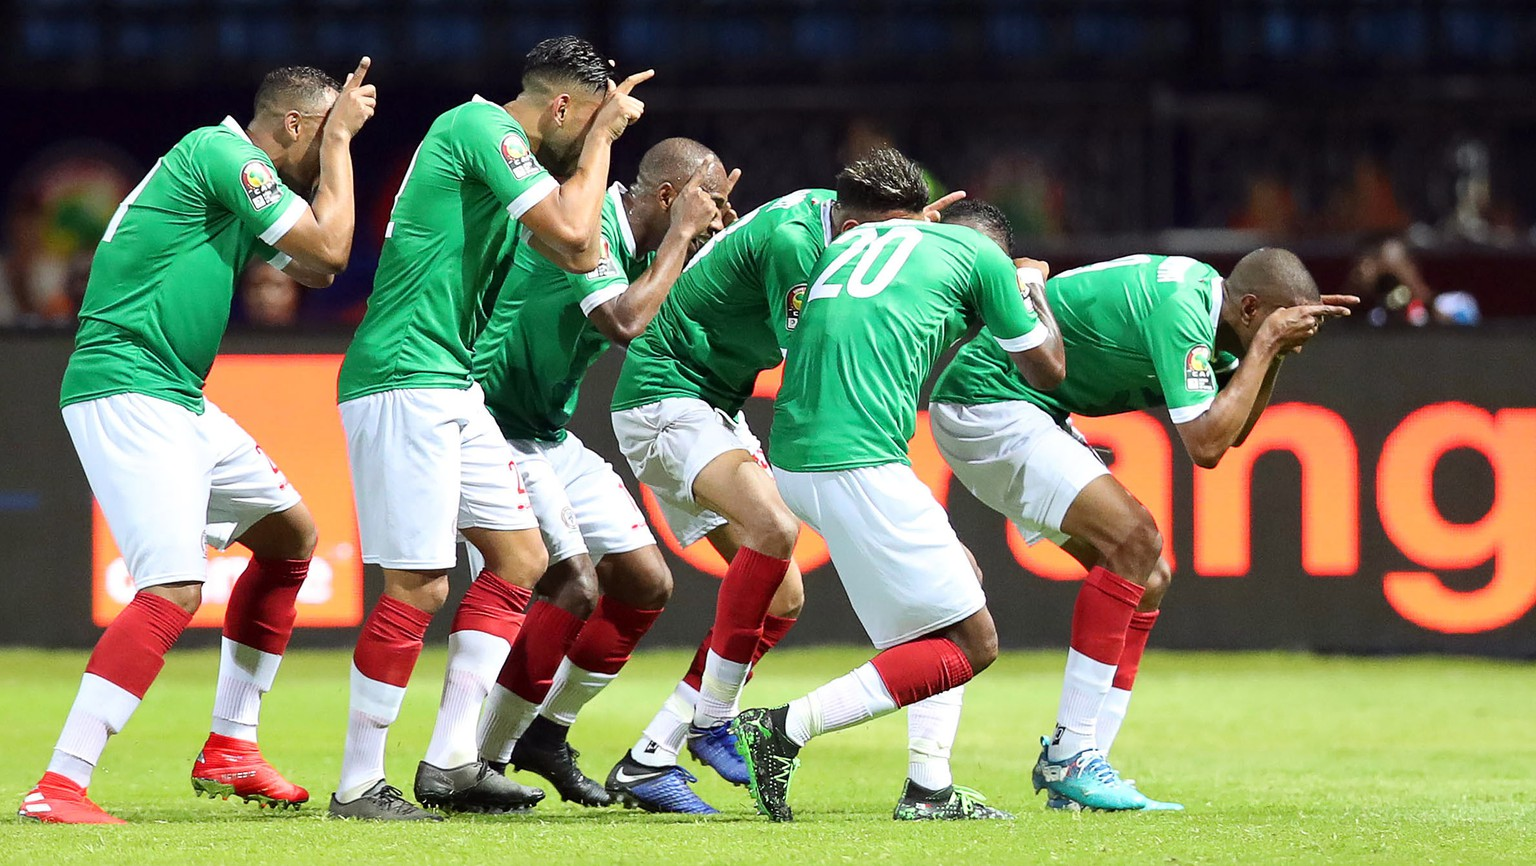 epa07667312 Players of Madagascar celebrate their 1-1 equalizer during the 2019 Africa Cup of Nations (AFCON) group B soccer match between Guinea and Madagascar in Alexandria, Egypt, 22 June 2019.  EPA/MUZI NTOMBELA